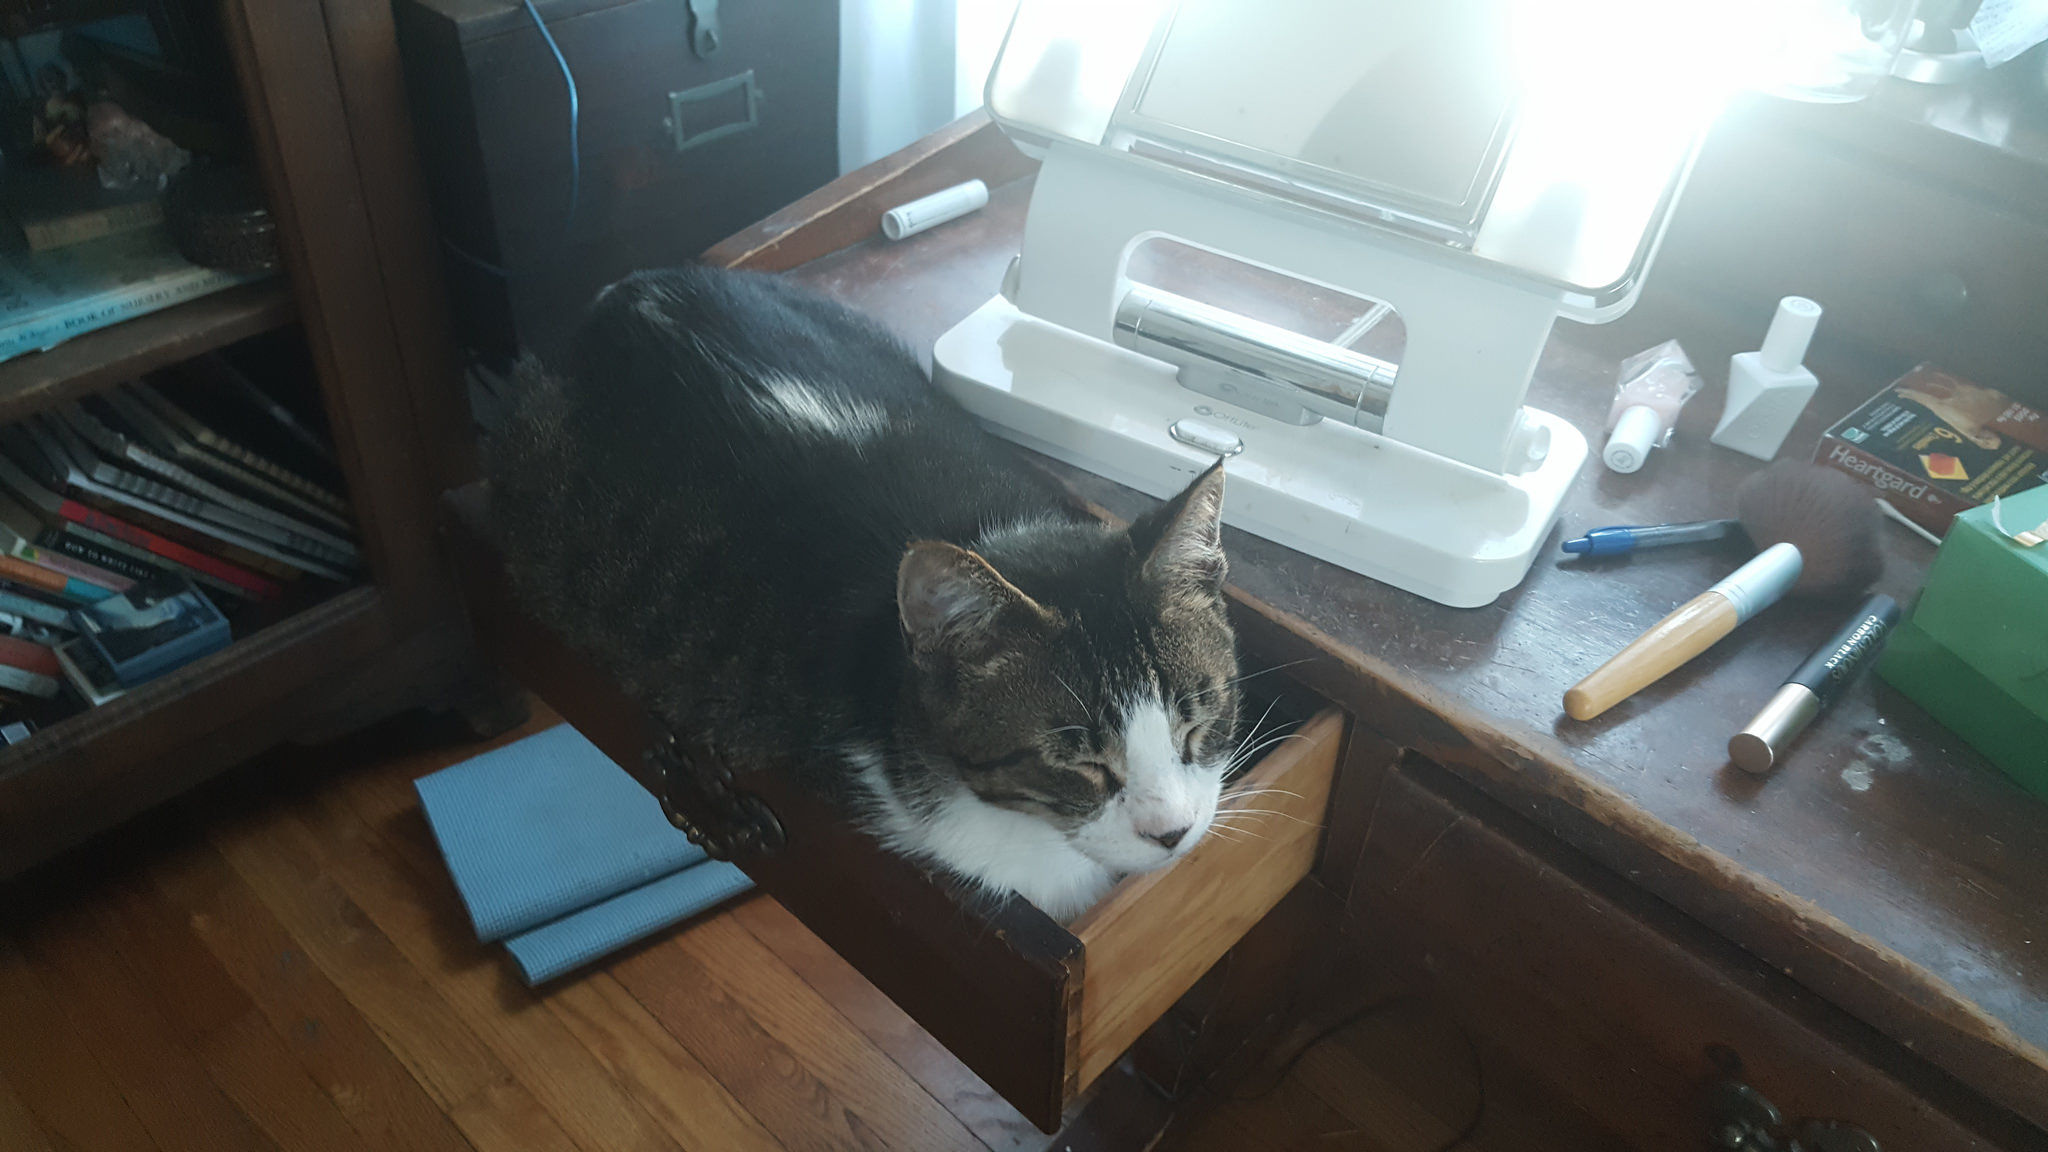 Ed decided the makeup drawer would be a good place to take a nap - while I was in the middle of putting on makeup.